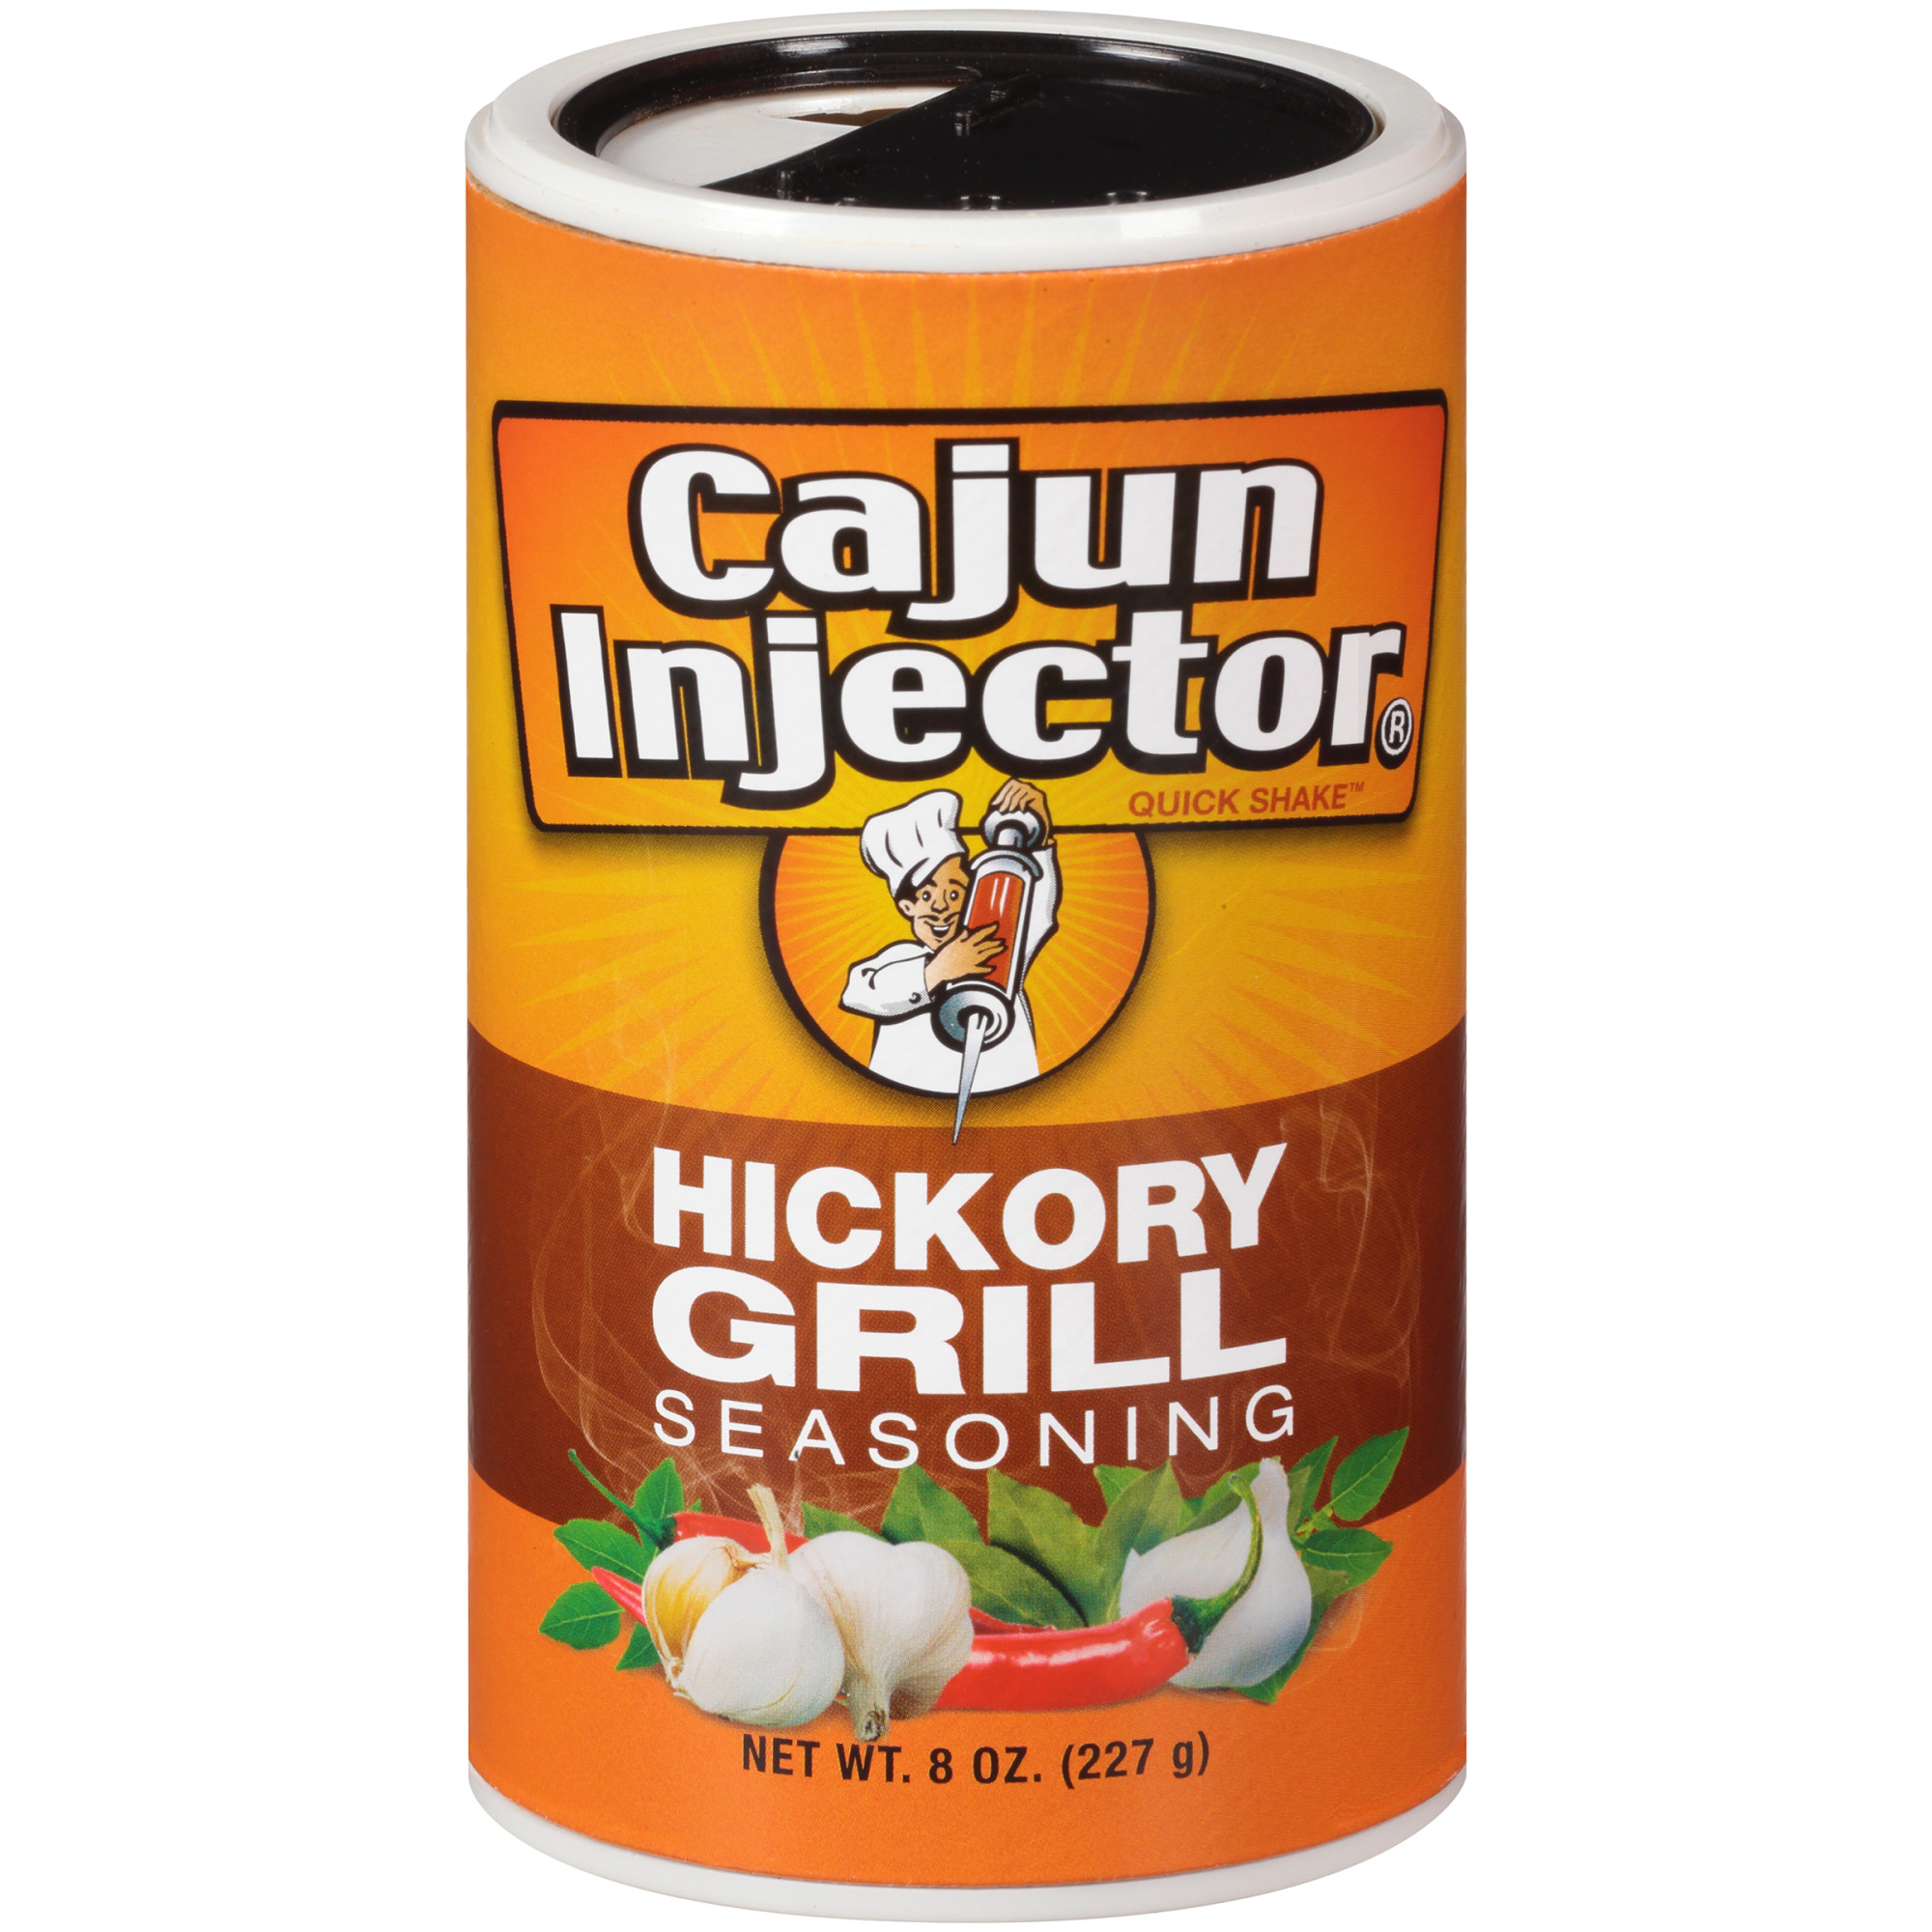 (2 Pack) Zatarain's Cajun Injectors Hickory Grill Seasoning, 8 oz